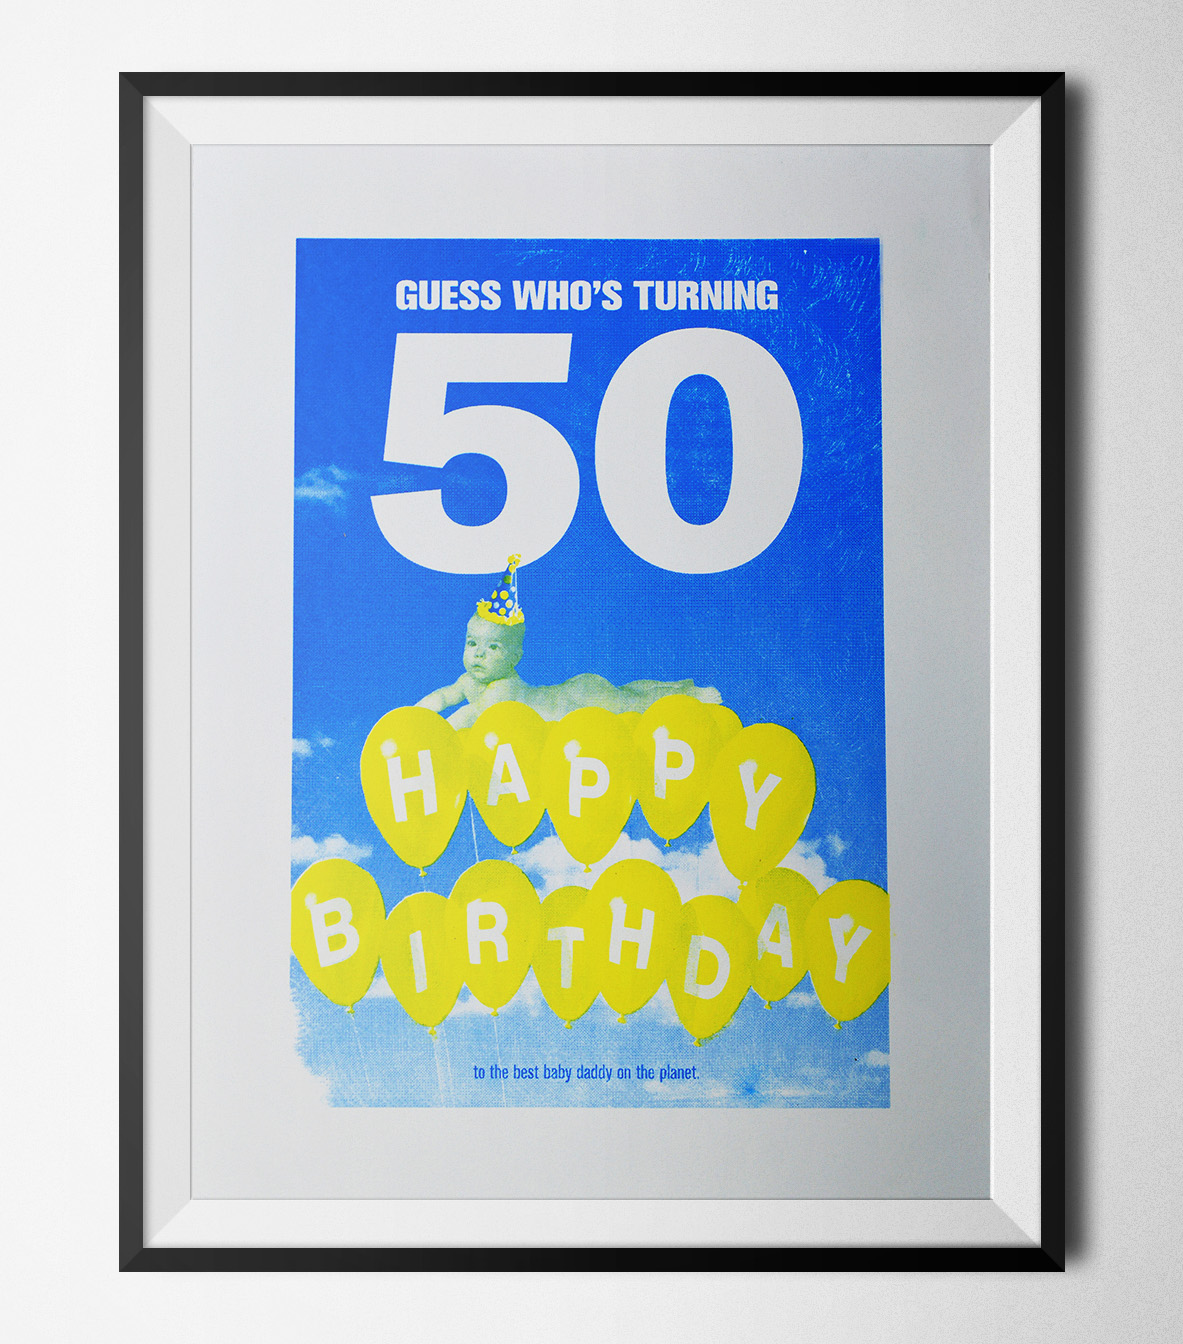 A lighthearted screen-print for my dad to remember his 50th birthday... since his memory isn't what it used to be